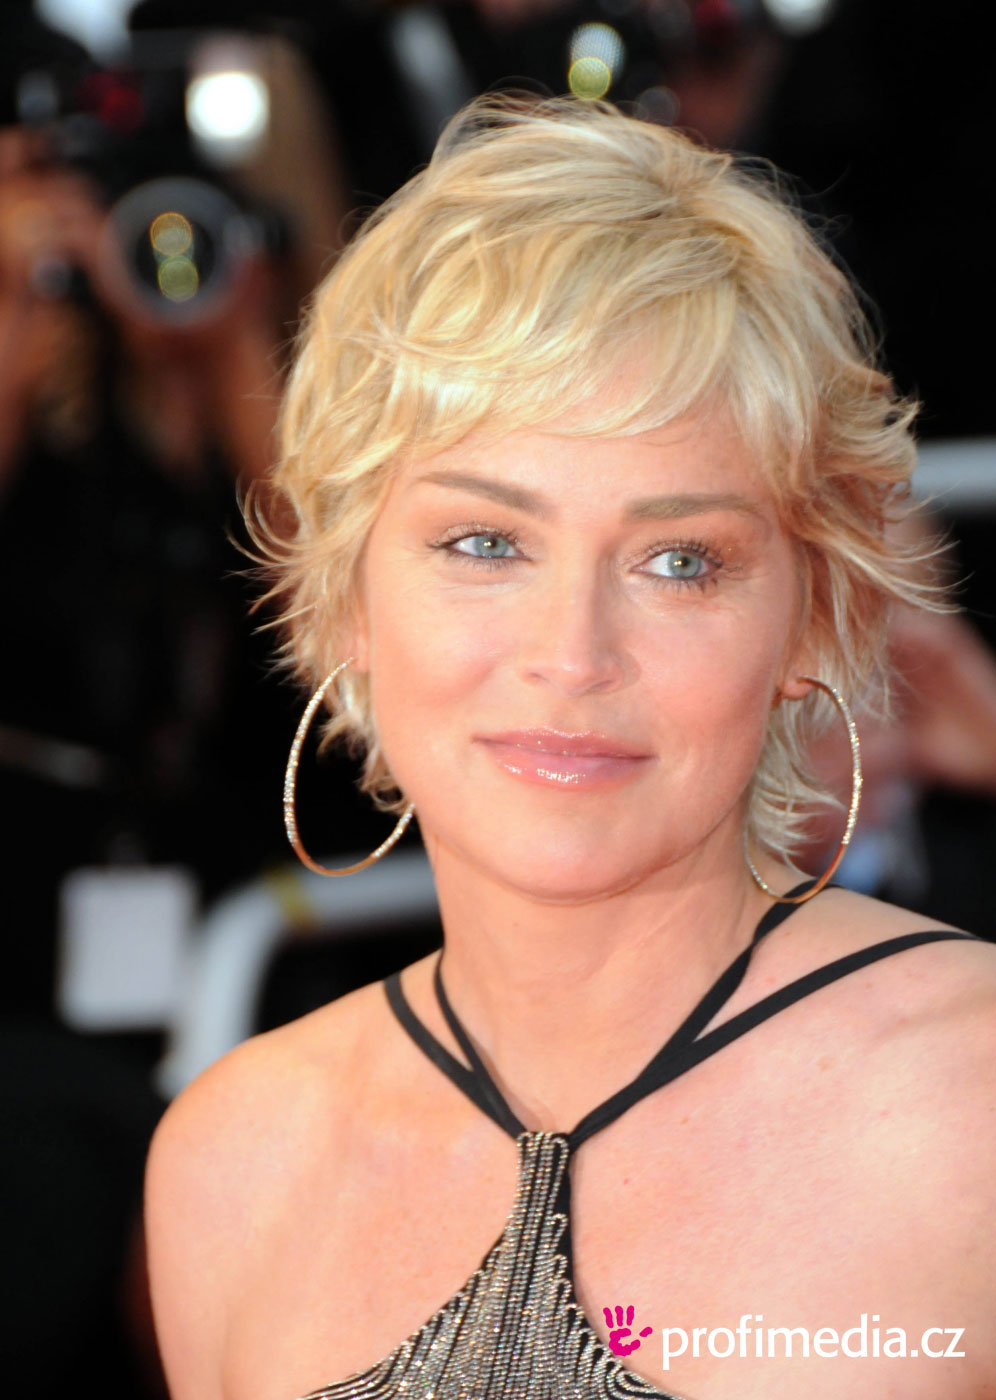 Sharon stone hairstyle easyhairstyler you can try this sharon stones hairstyle with your own photo upload at easyhairstyler urmus Choice Image